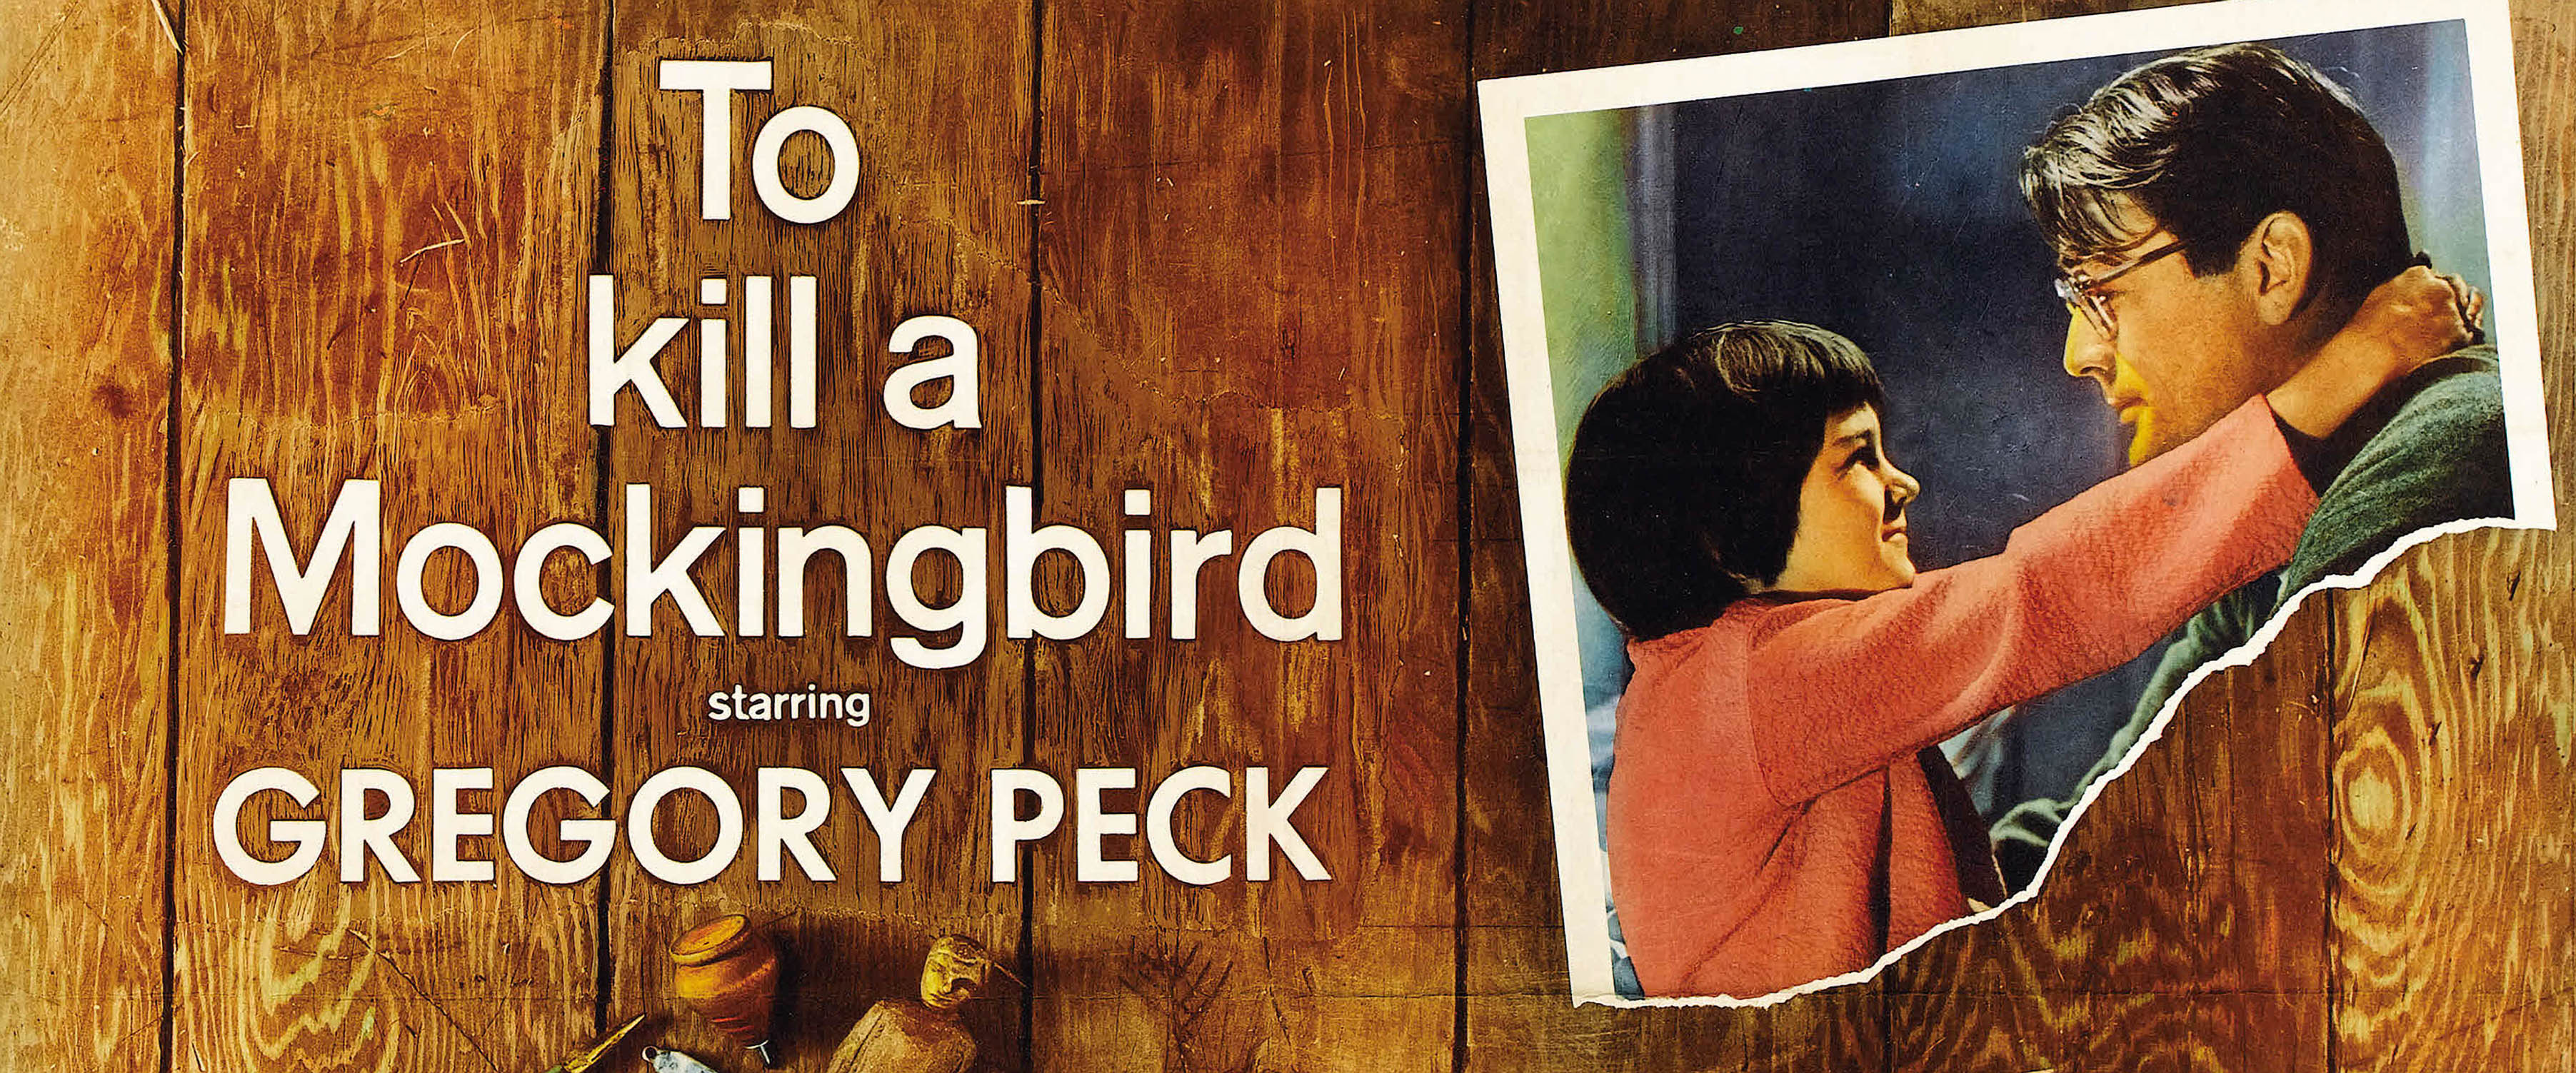 Poster_-_To_Kill_a_Mockingbird_02-Edit.jpg